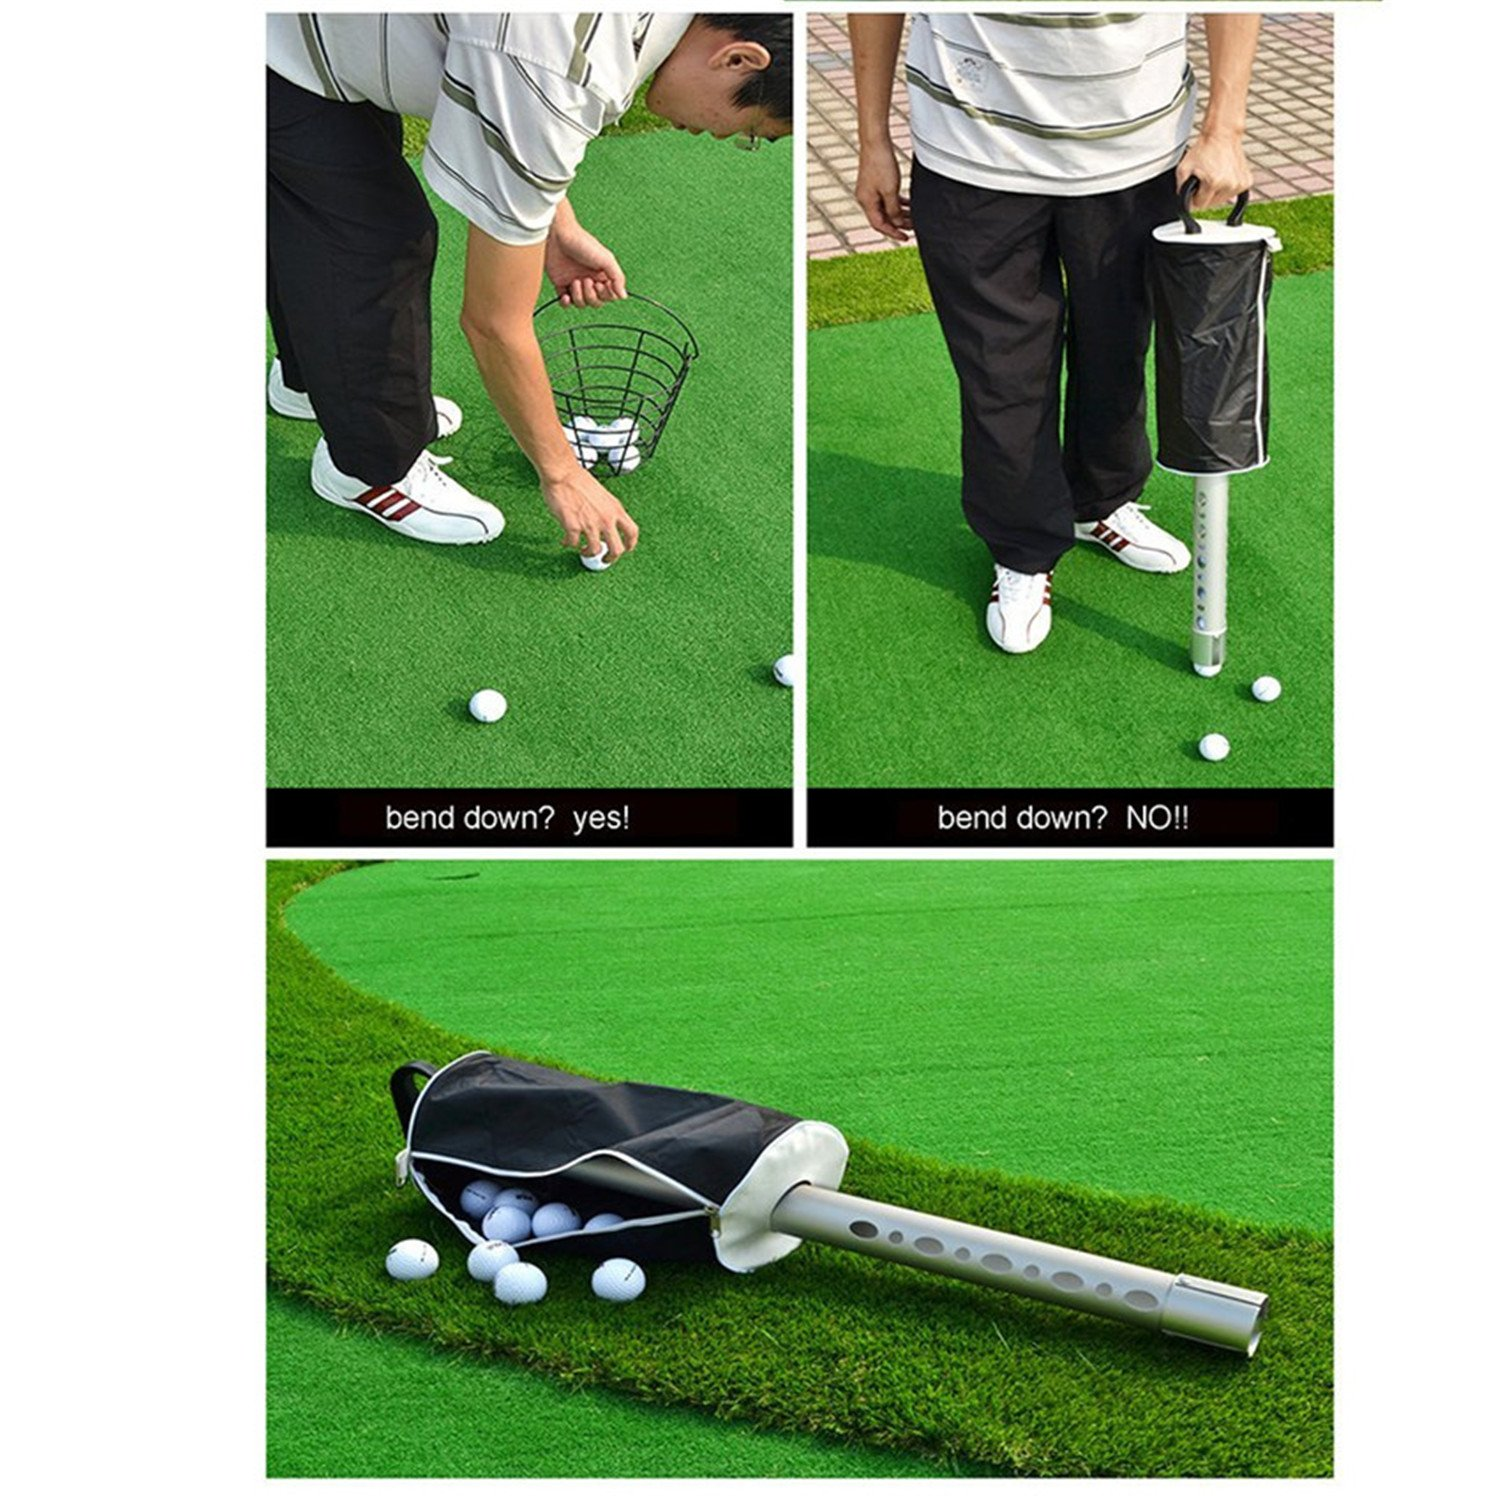 Finger Ten New Golf Ball Pick Up Shag Bag Steel Tube Retriever Portable Pocket Storage Shagger Practice Pick-up with Free Golf Ball Wipe Towel Pack Set by Finger Ten (Image #7)